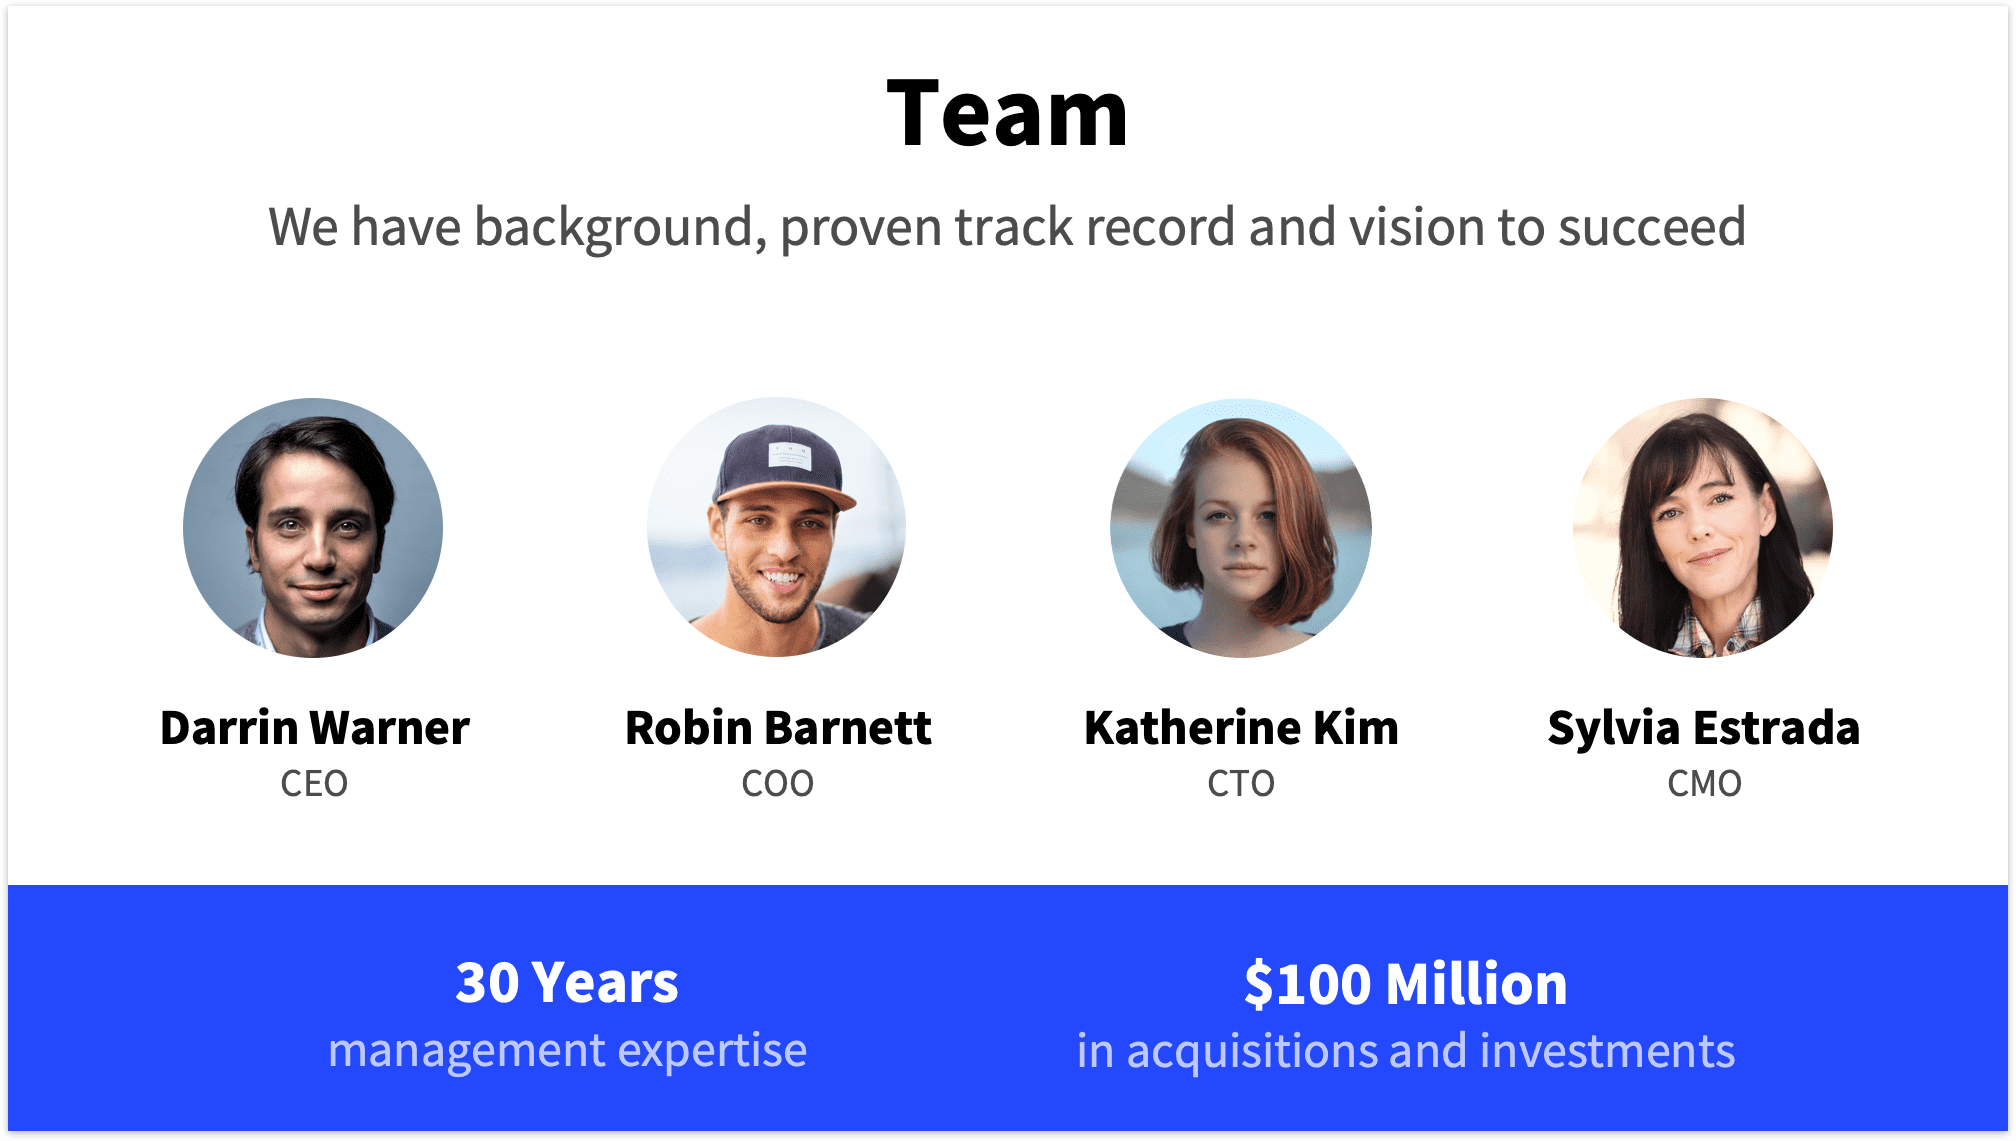 Team Slide for Startup Pitch Deck